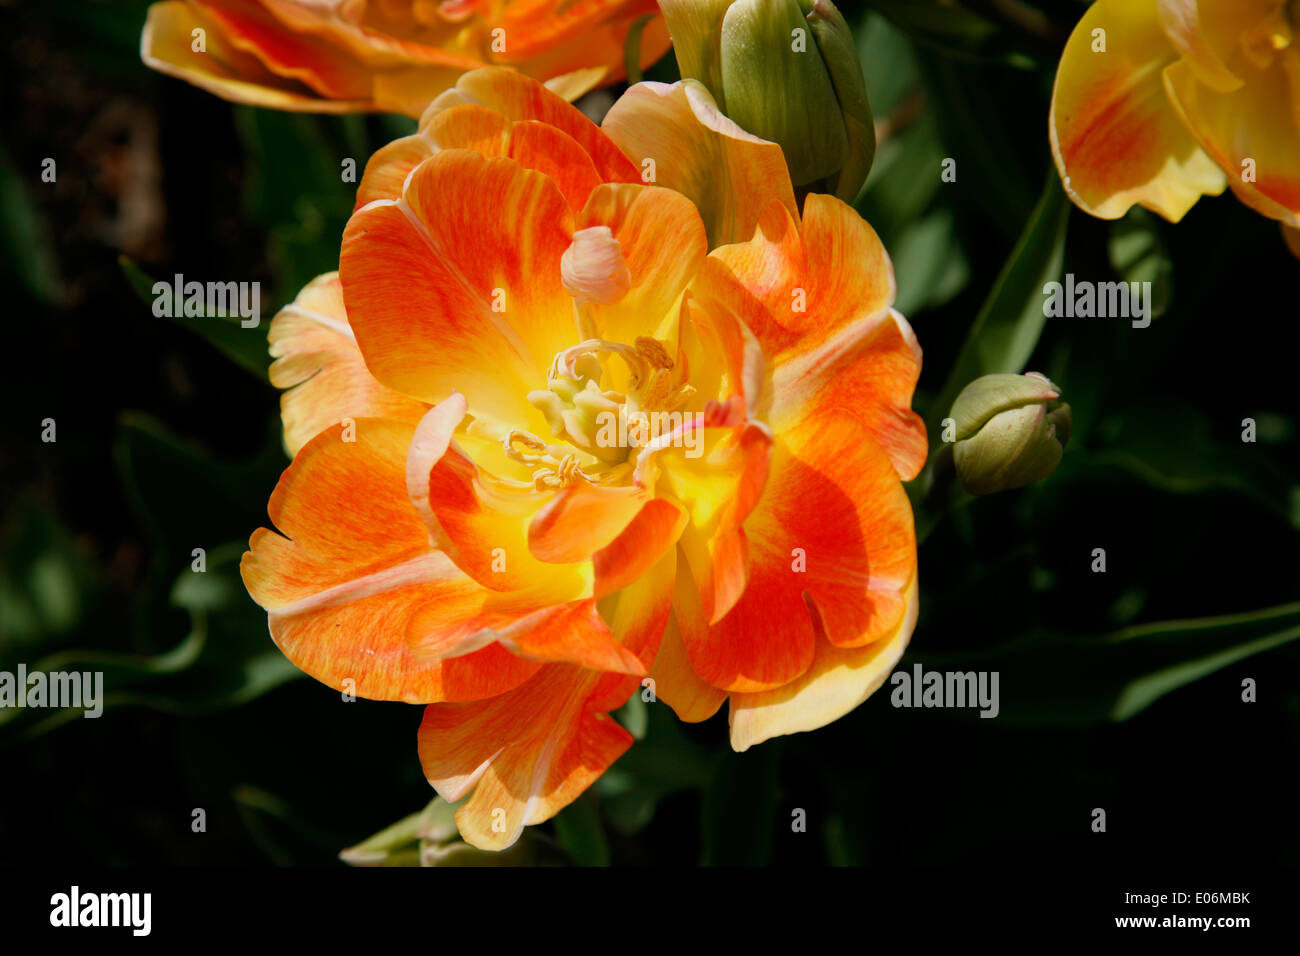 This Tulip is varying shades of apricot-tangerine with blush-apricot exterior petals, ever darkening  center. - Stock Image